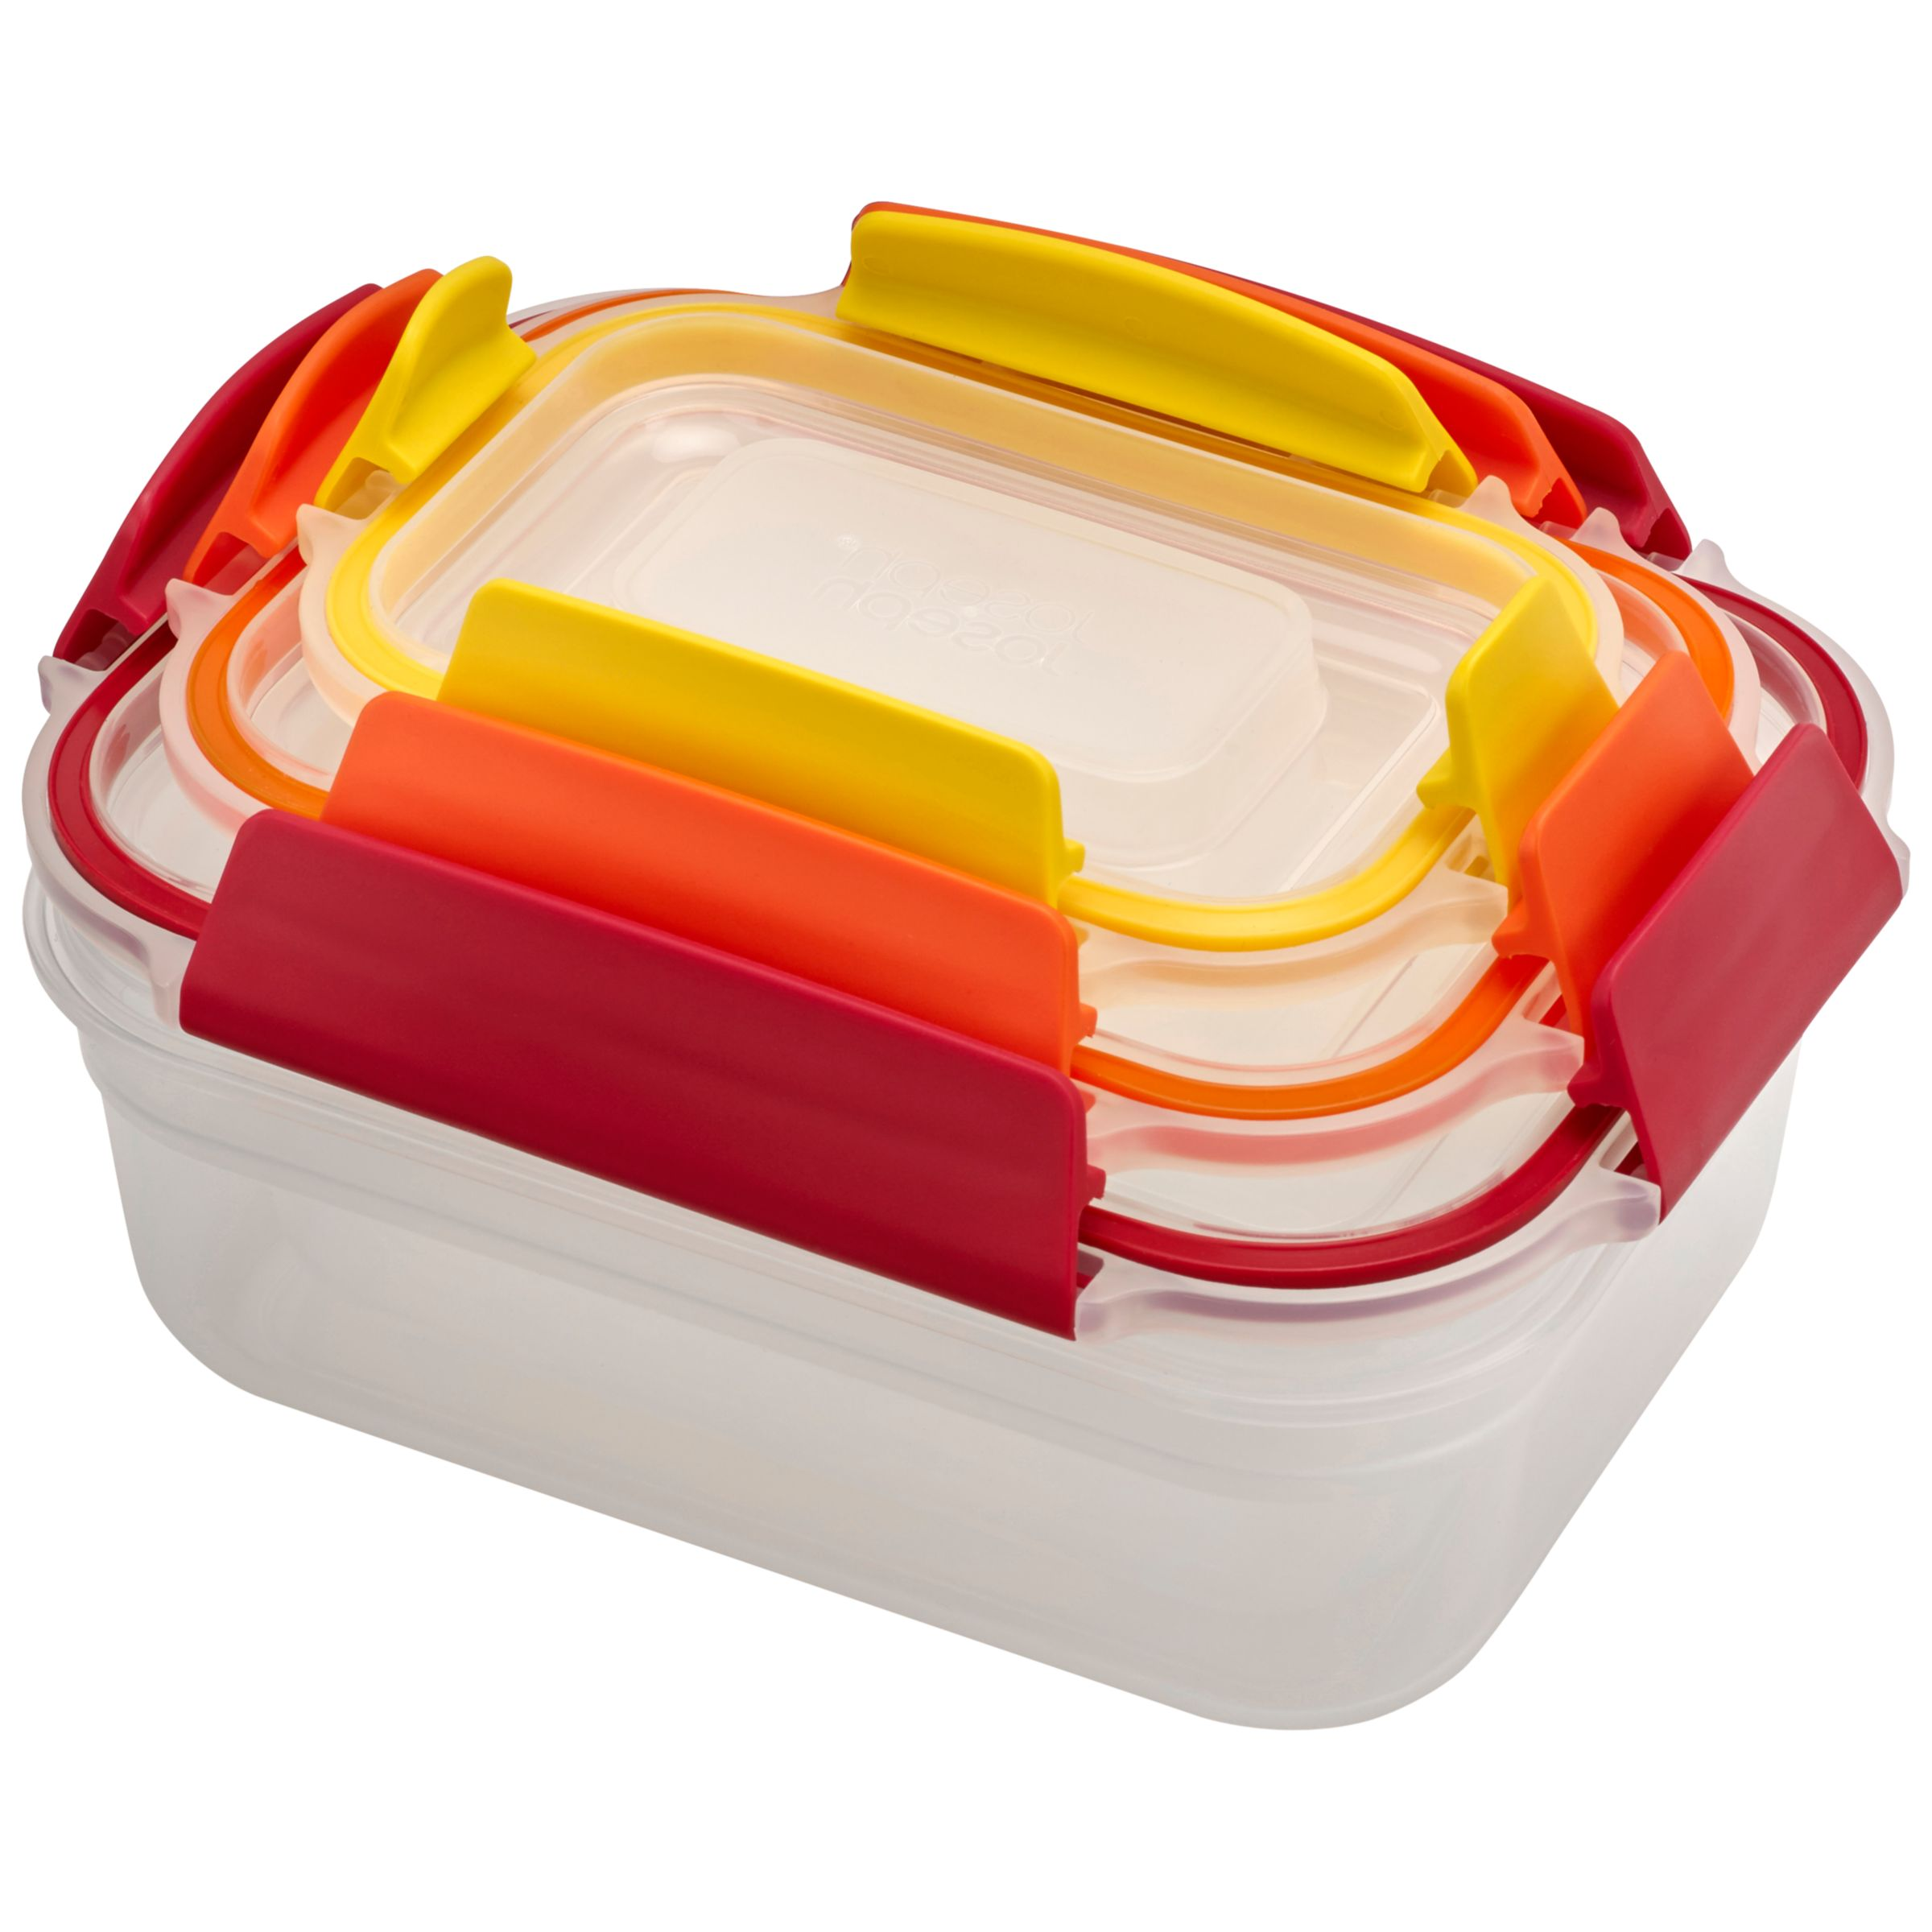 Joseph Joseph Joseph Joseph Nest Lock Airtight Storage Containers, Set of 3, Assorted